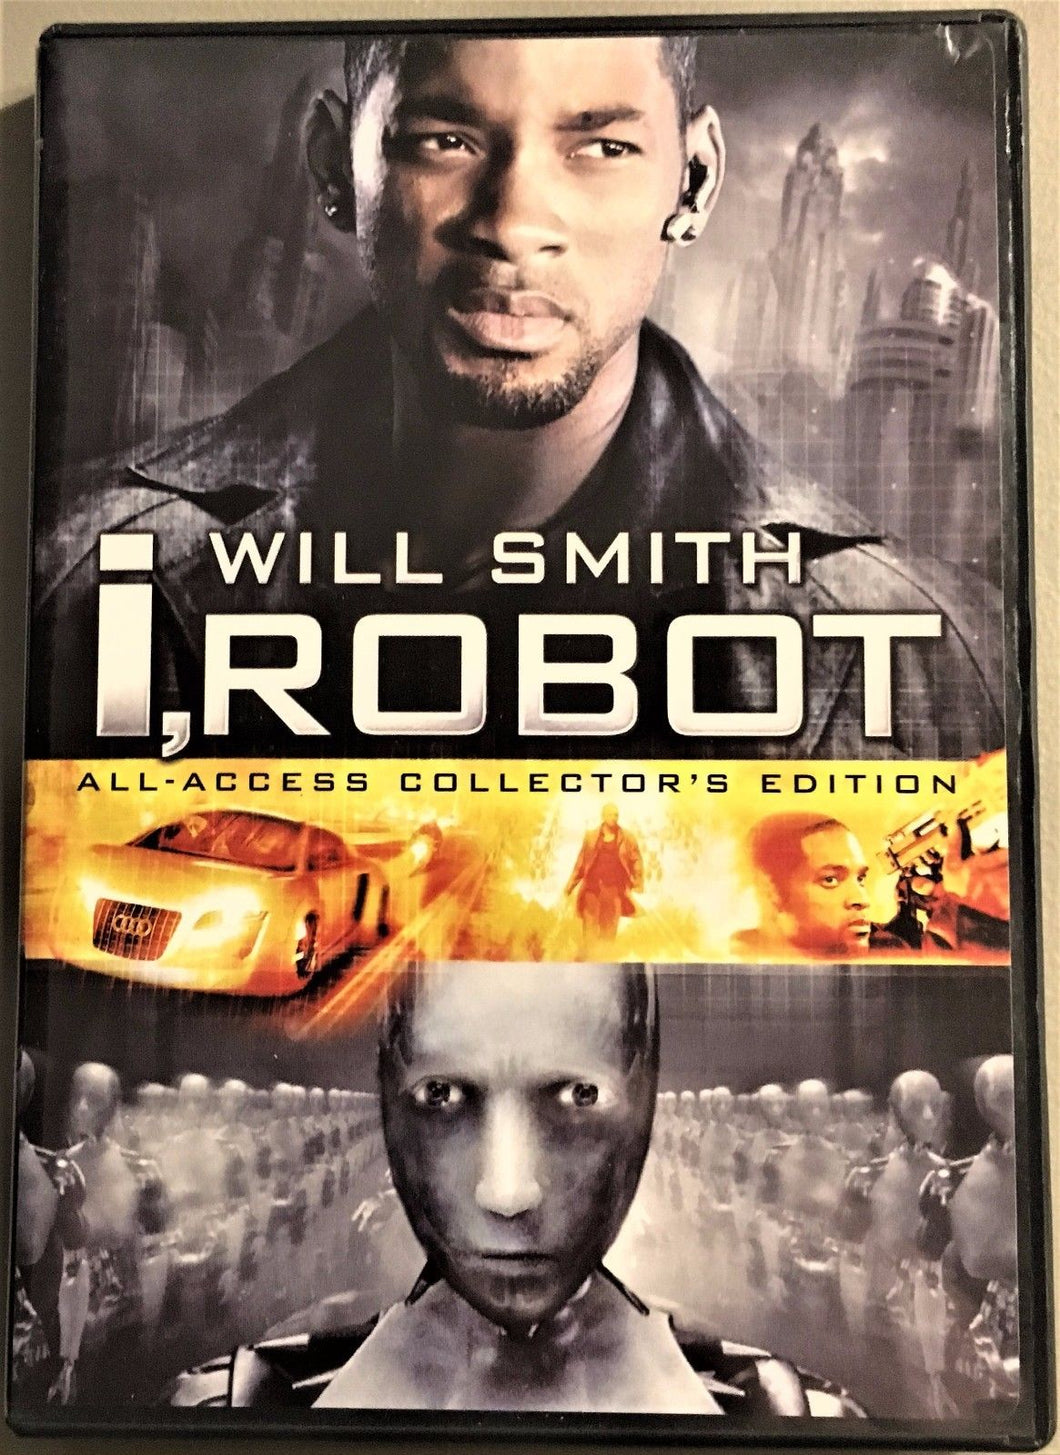 I, Robot-All Access Collectors Edition (DVD, 2005, 2-Disc Set-Wiesc